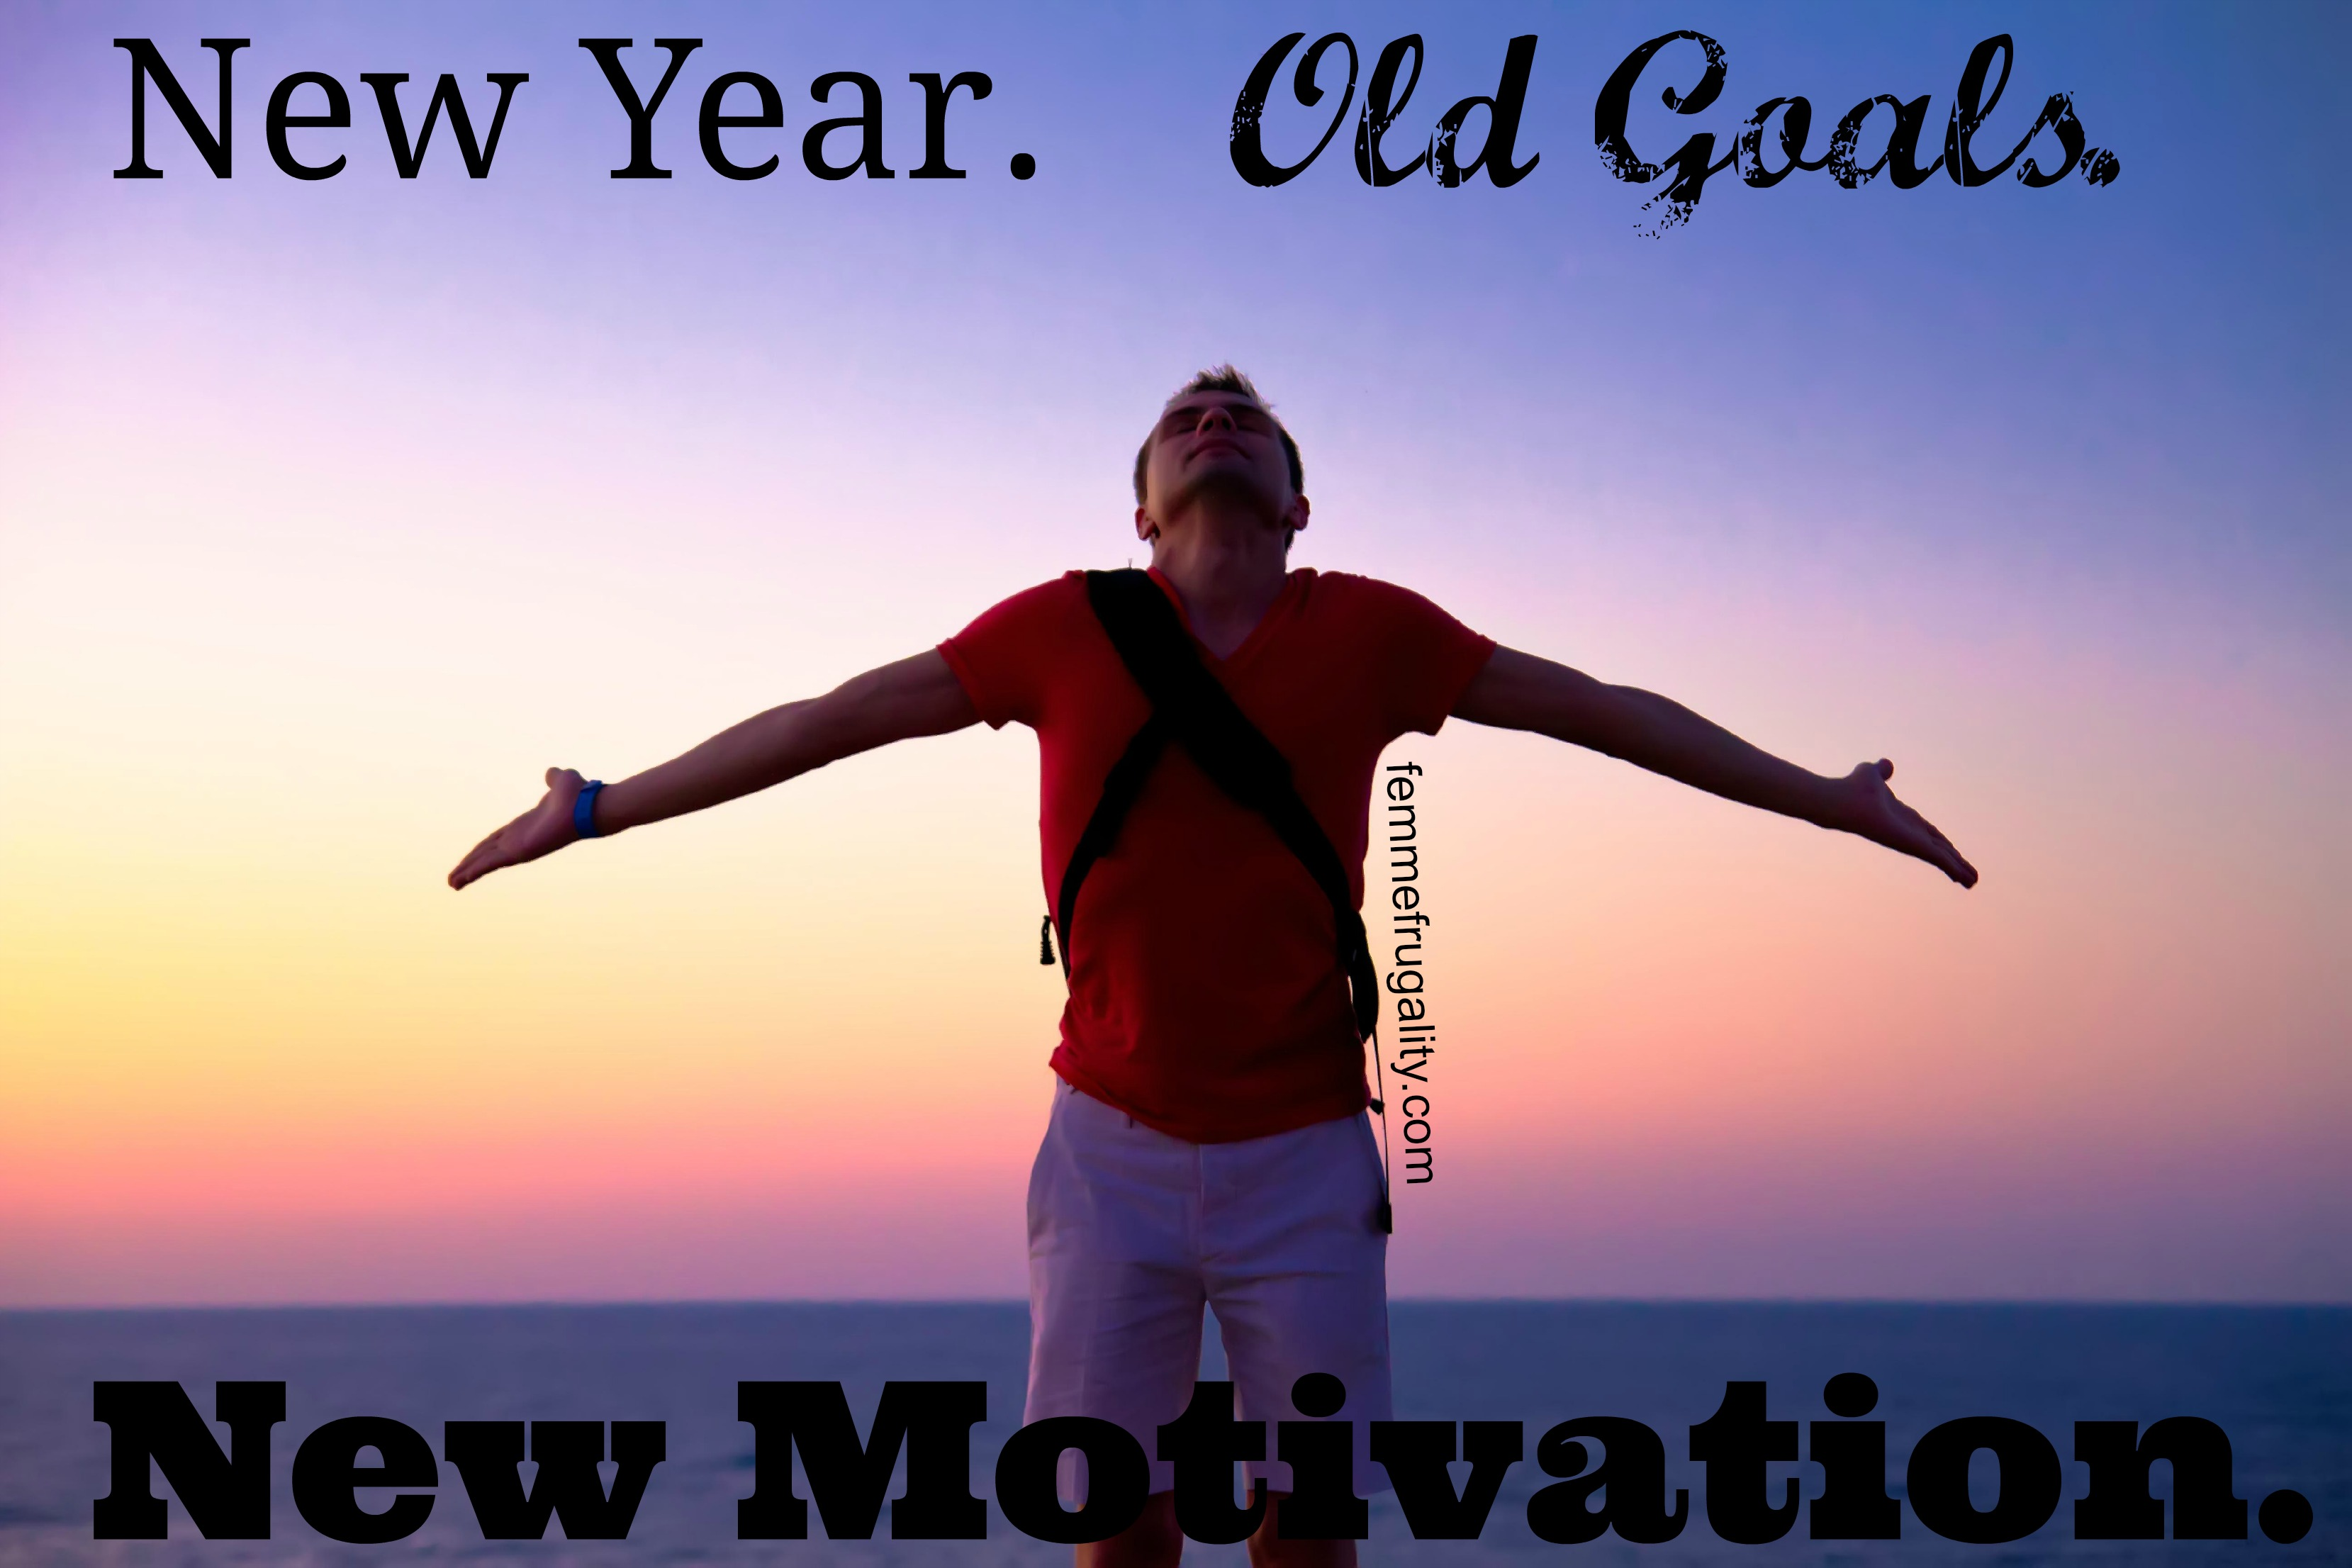 New Year Old Goal New Energy